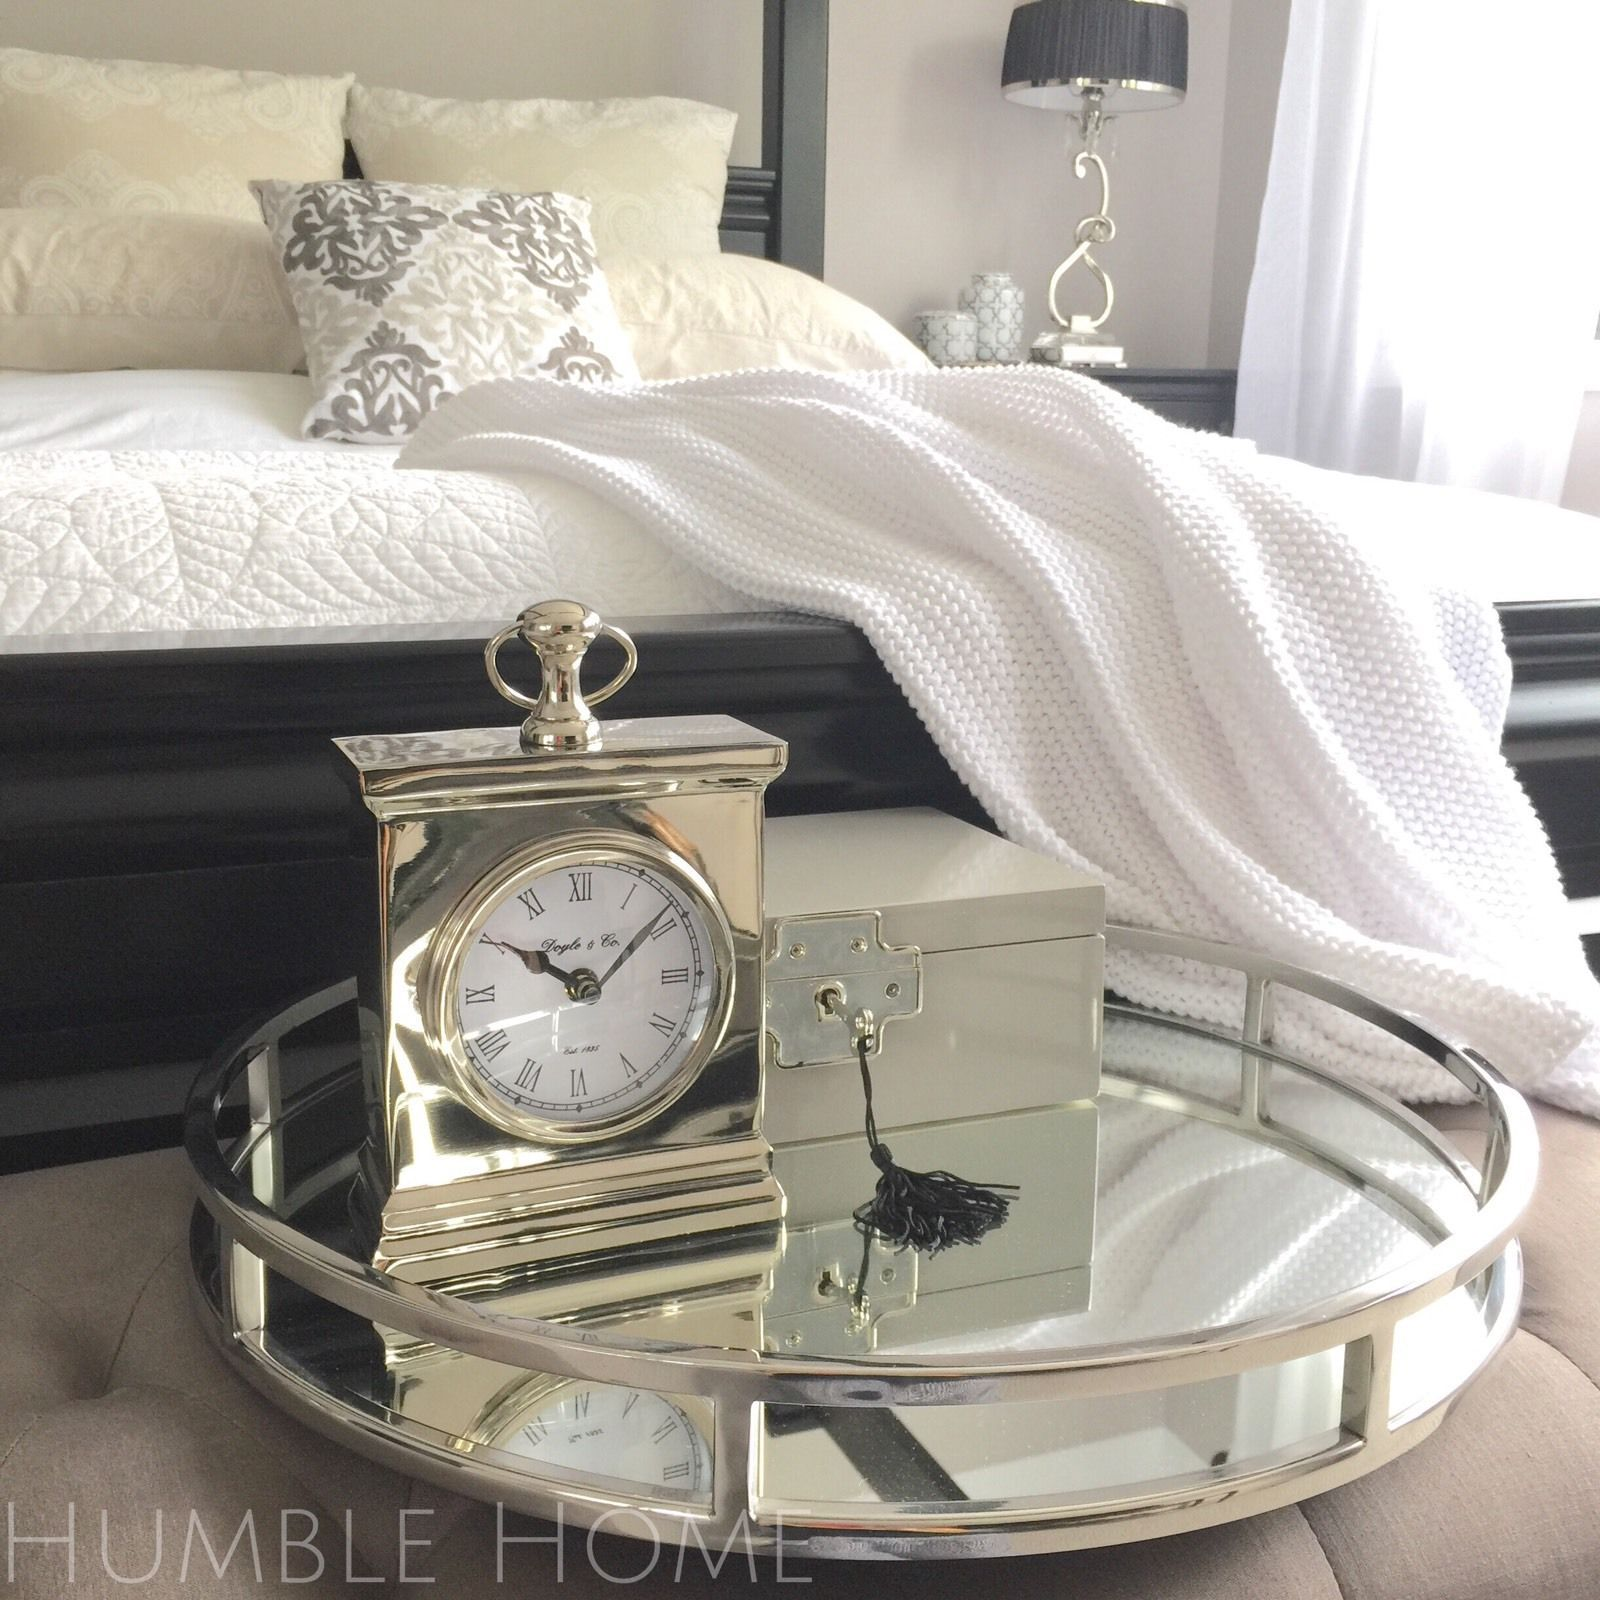 Absolutely Stunning Tray Round Mirror Tray with Polished Nickel